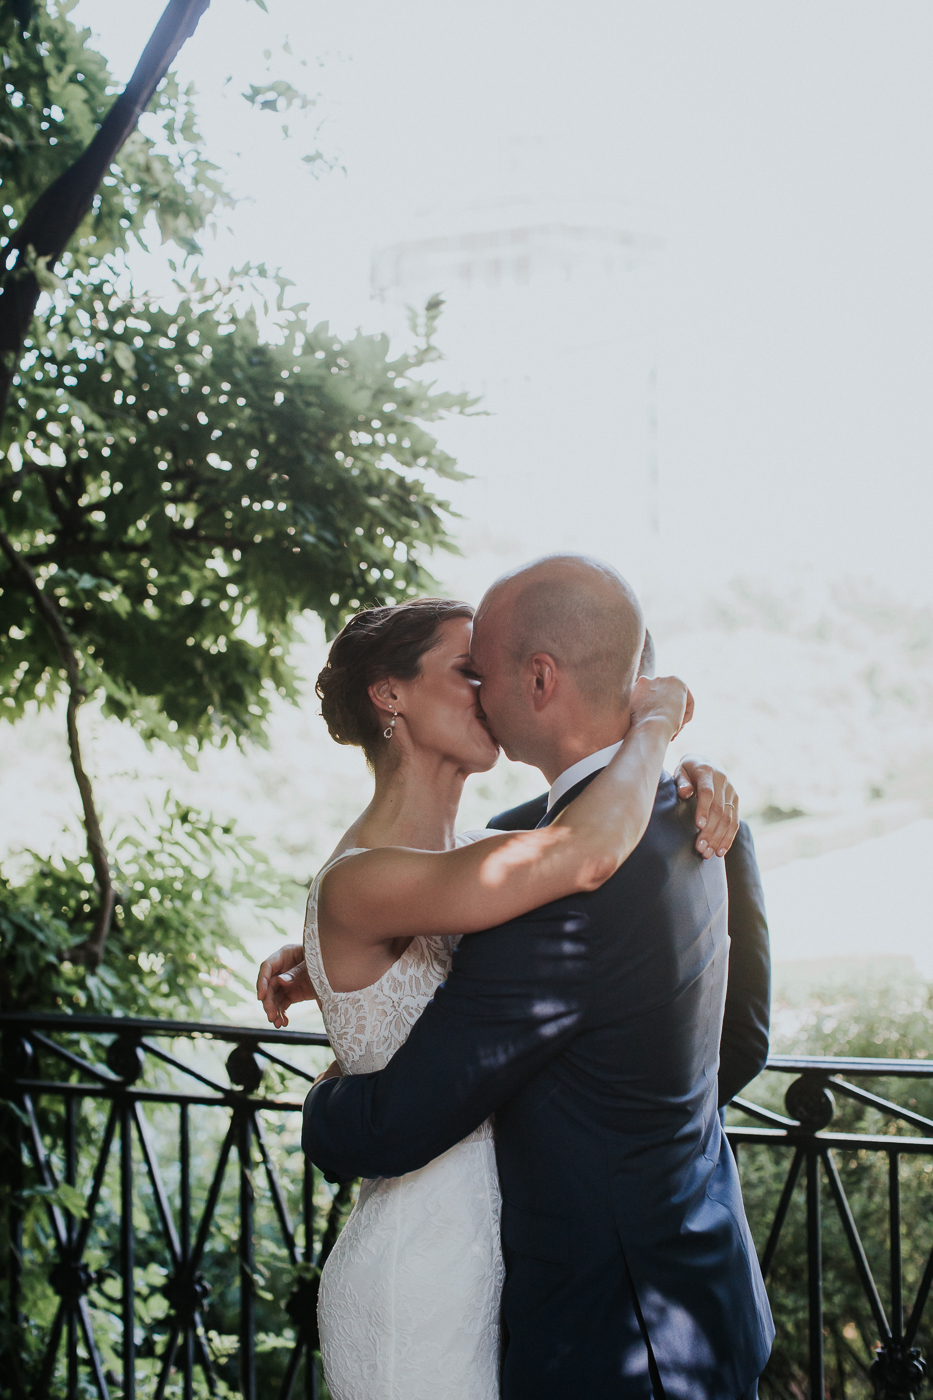 NYC-Central-Park-Conservatory-Garden-Intimate-Elopement-Documentary-Wedding-Photographer-26.jpg